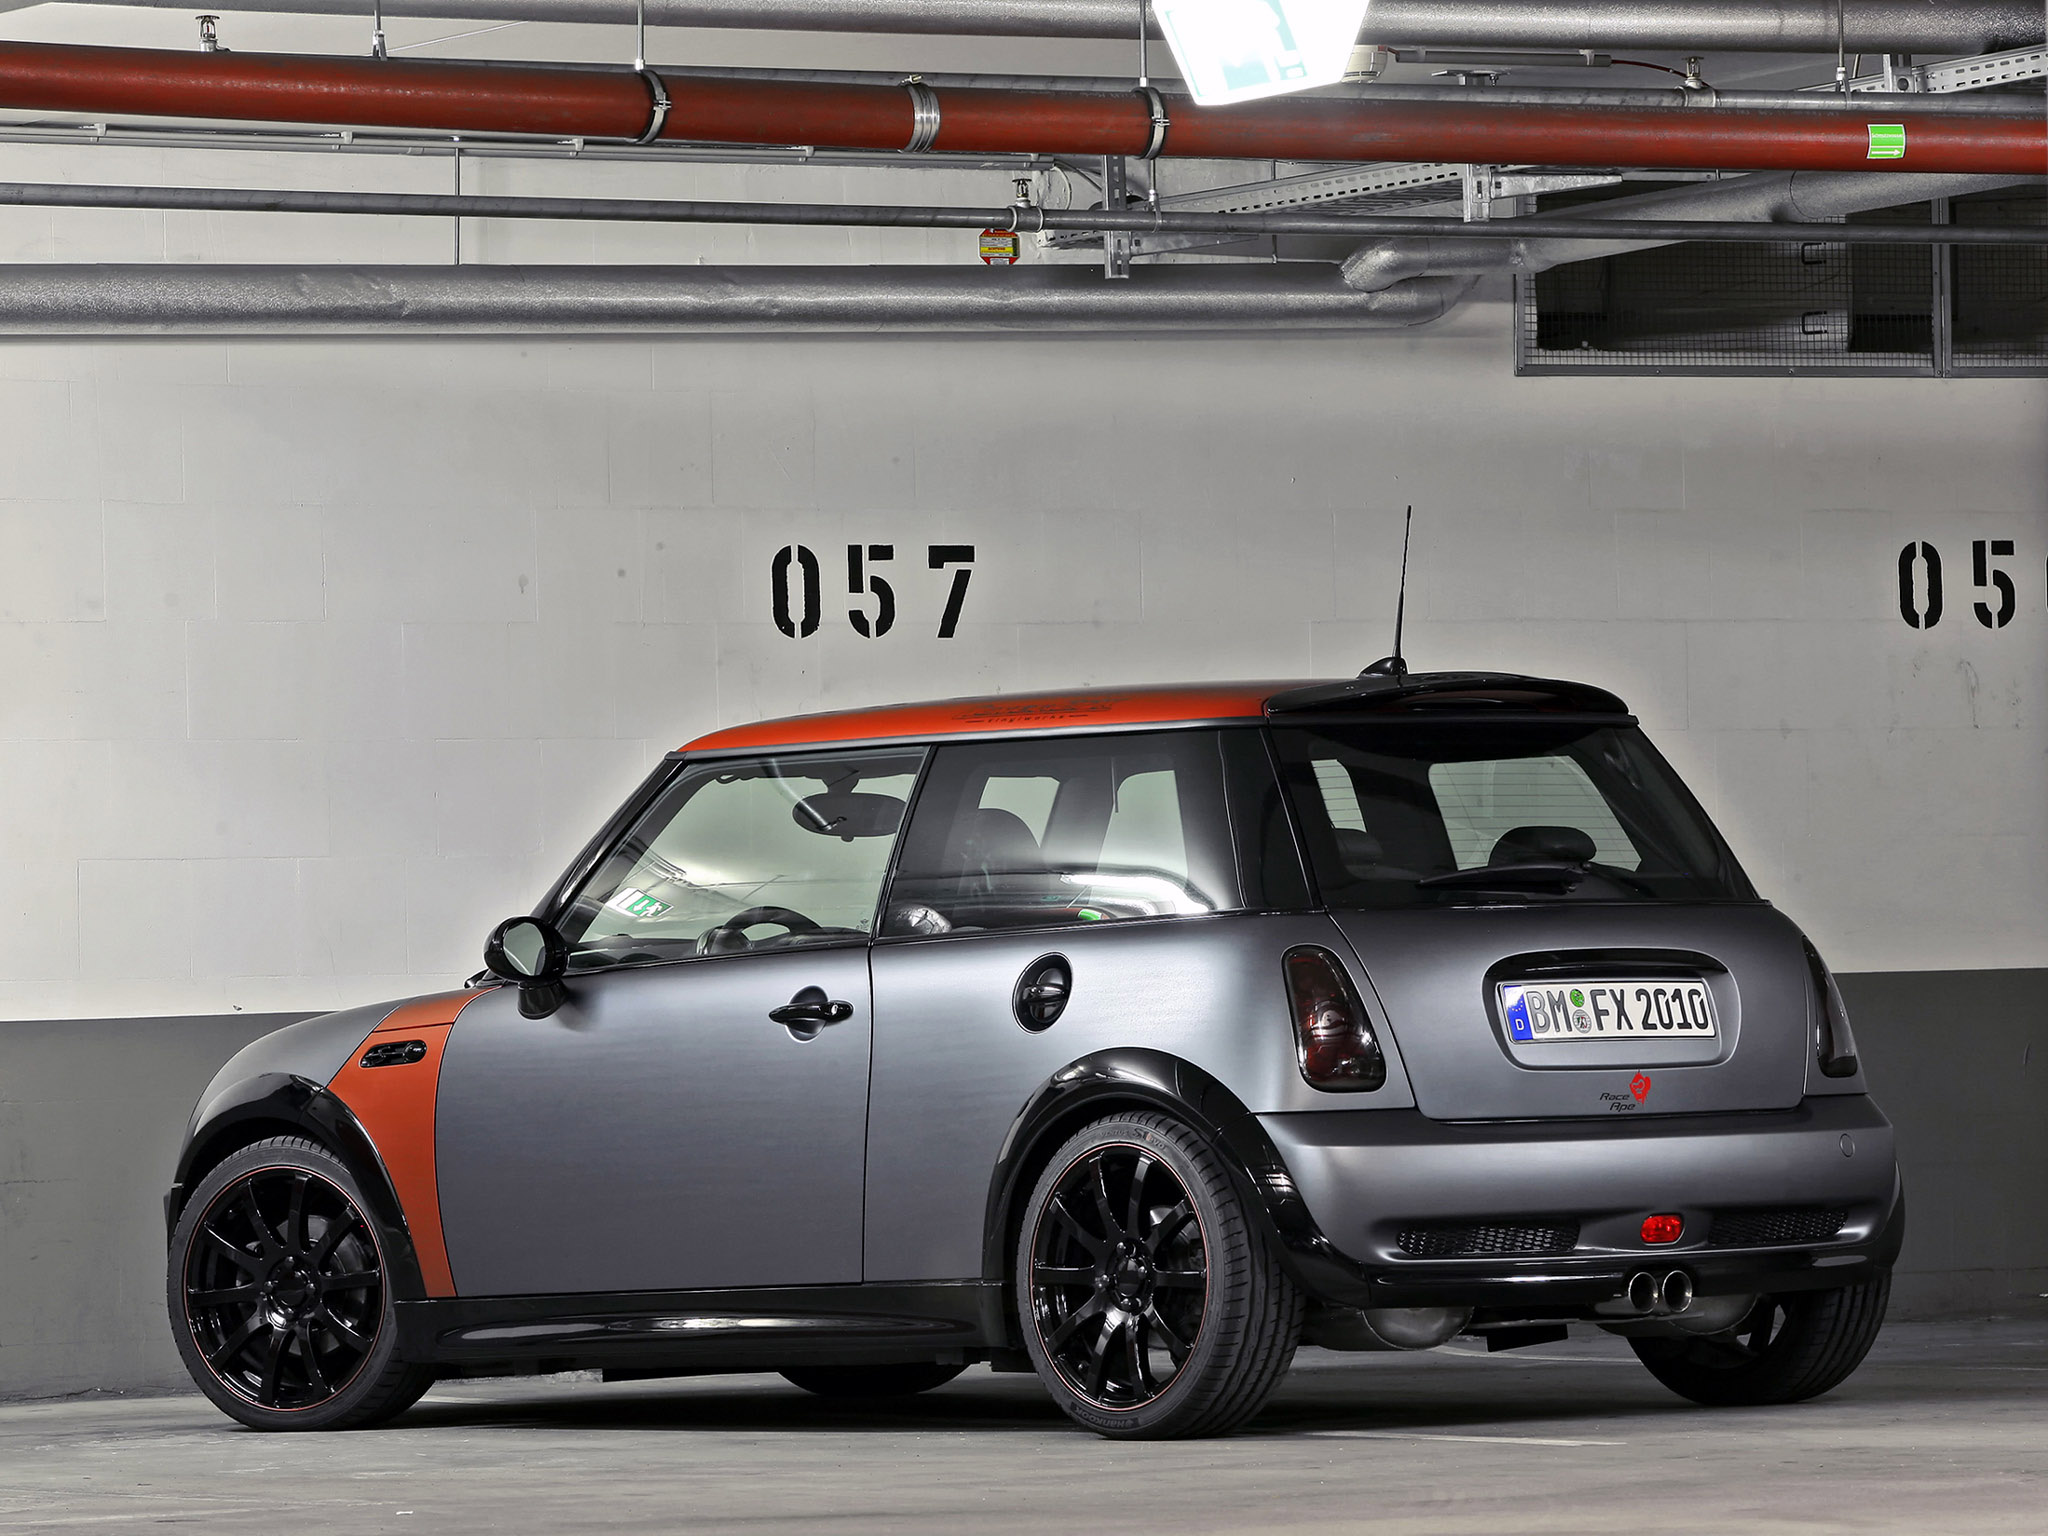 mini cooper s coverefx project one 2011 mini cooper s coverefx project one 2011 photo 01 car. Black Bedroom Furniture Sets. Home Design Ideas